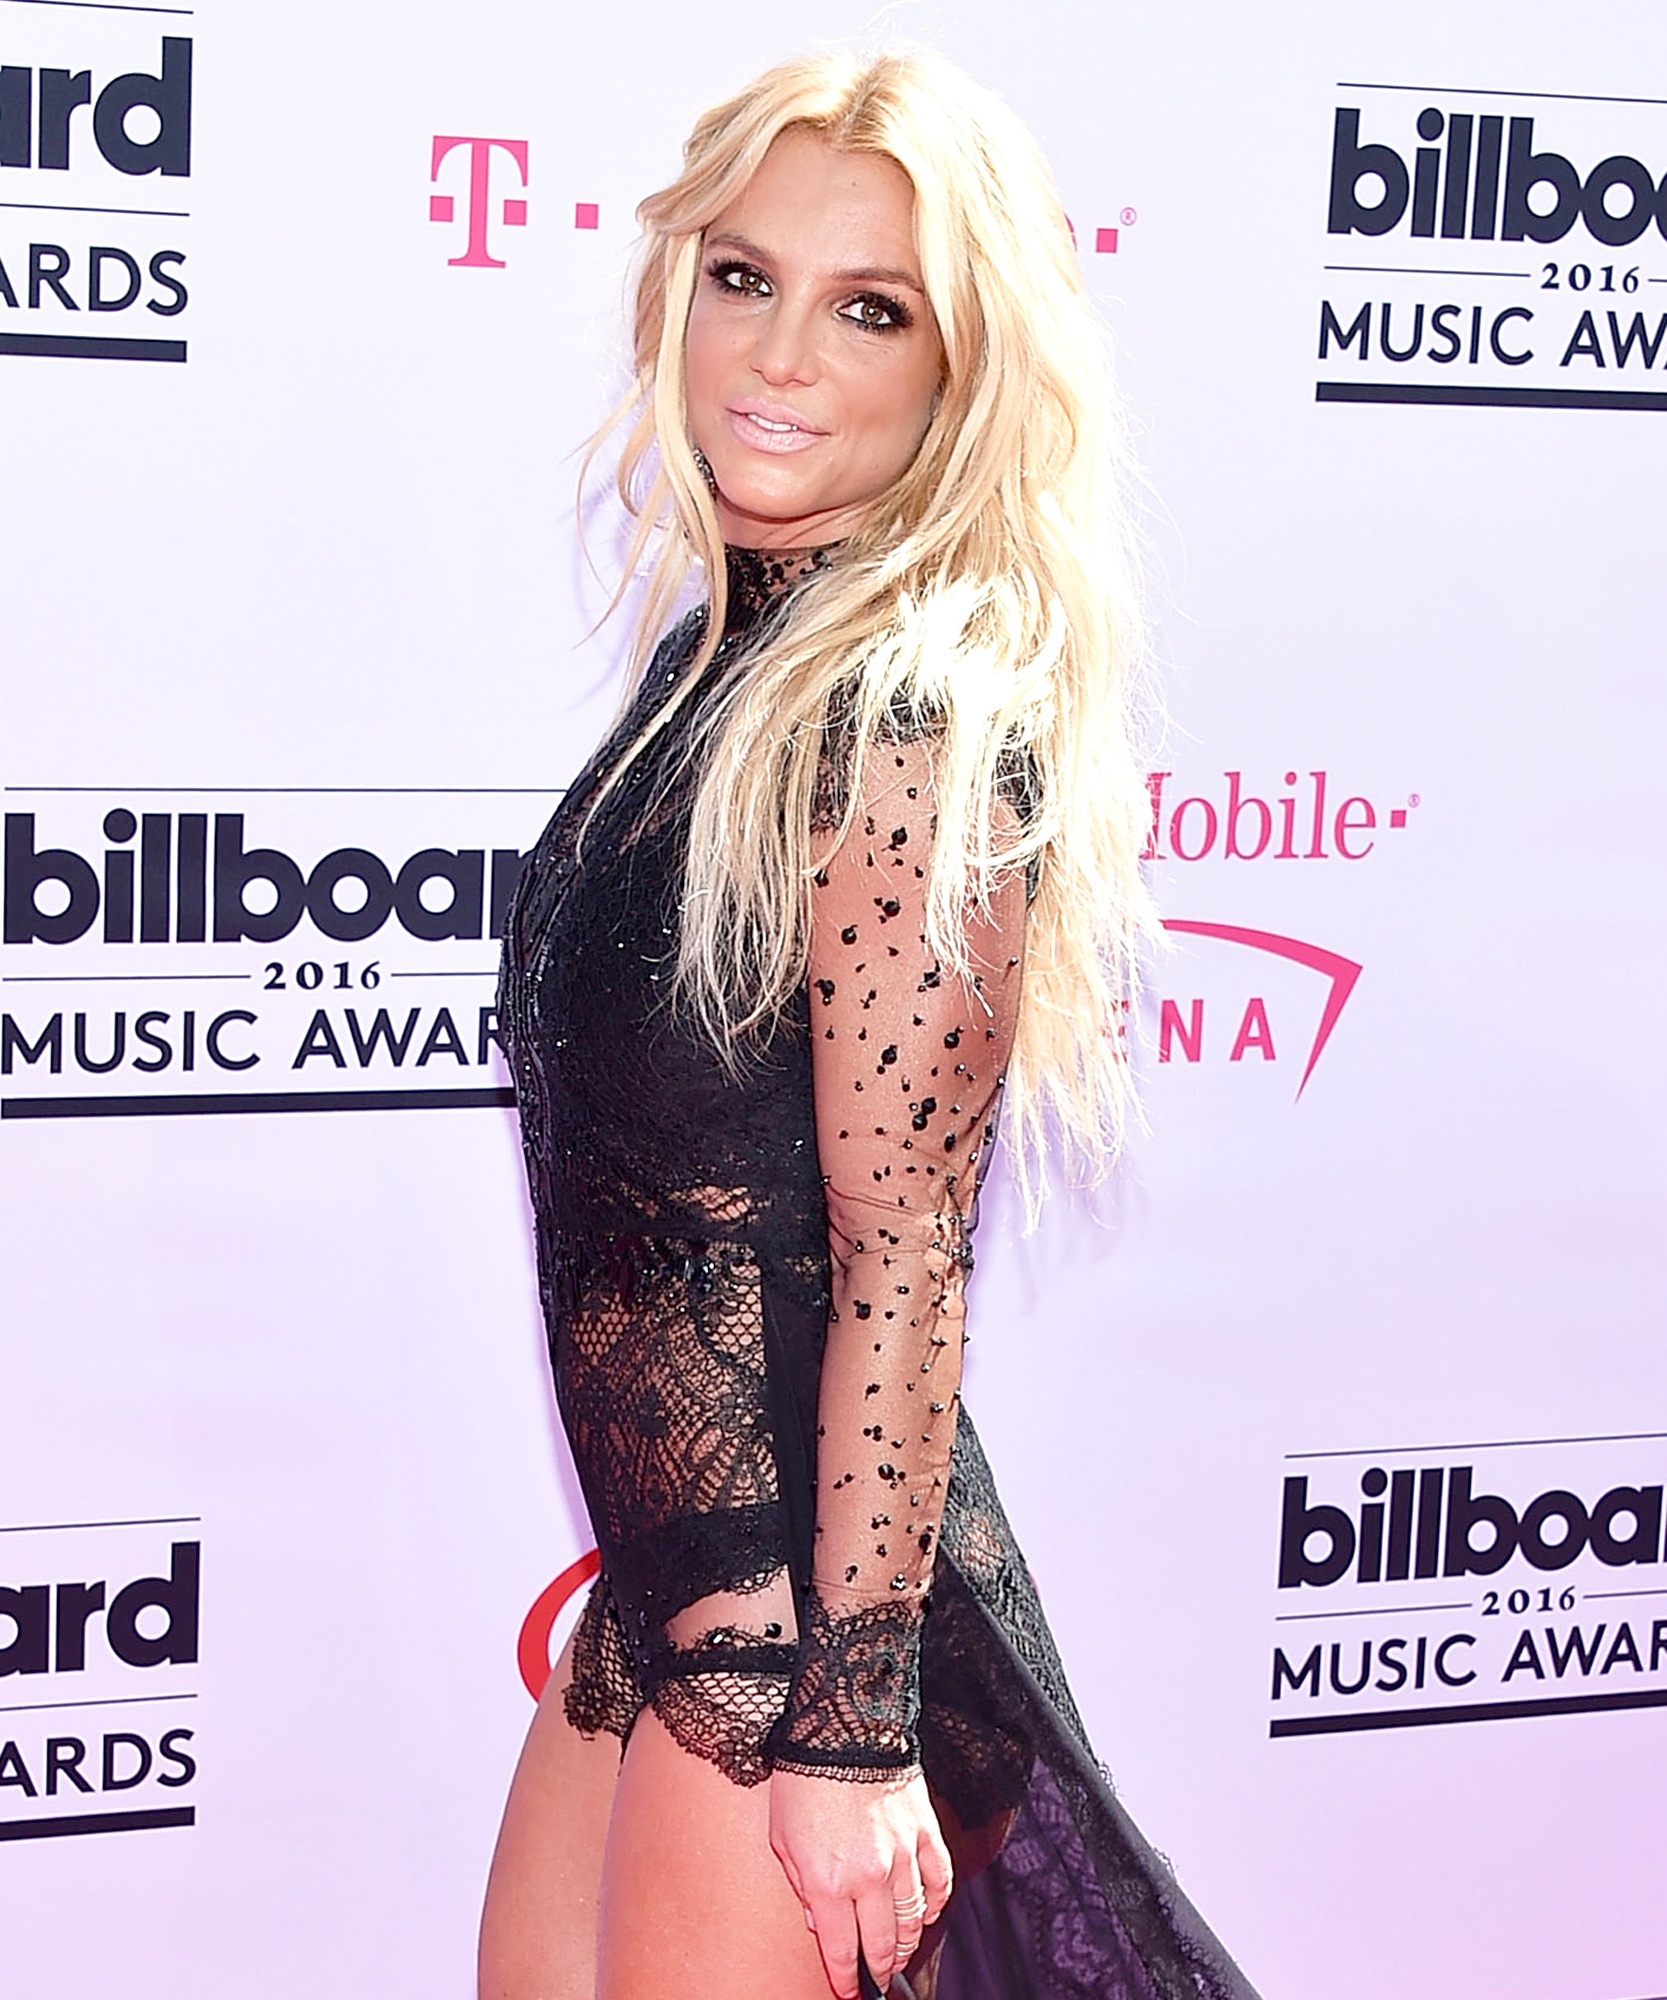 Britney Spears Billboard Music Awards 2015 - Lead 2016